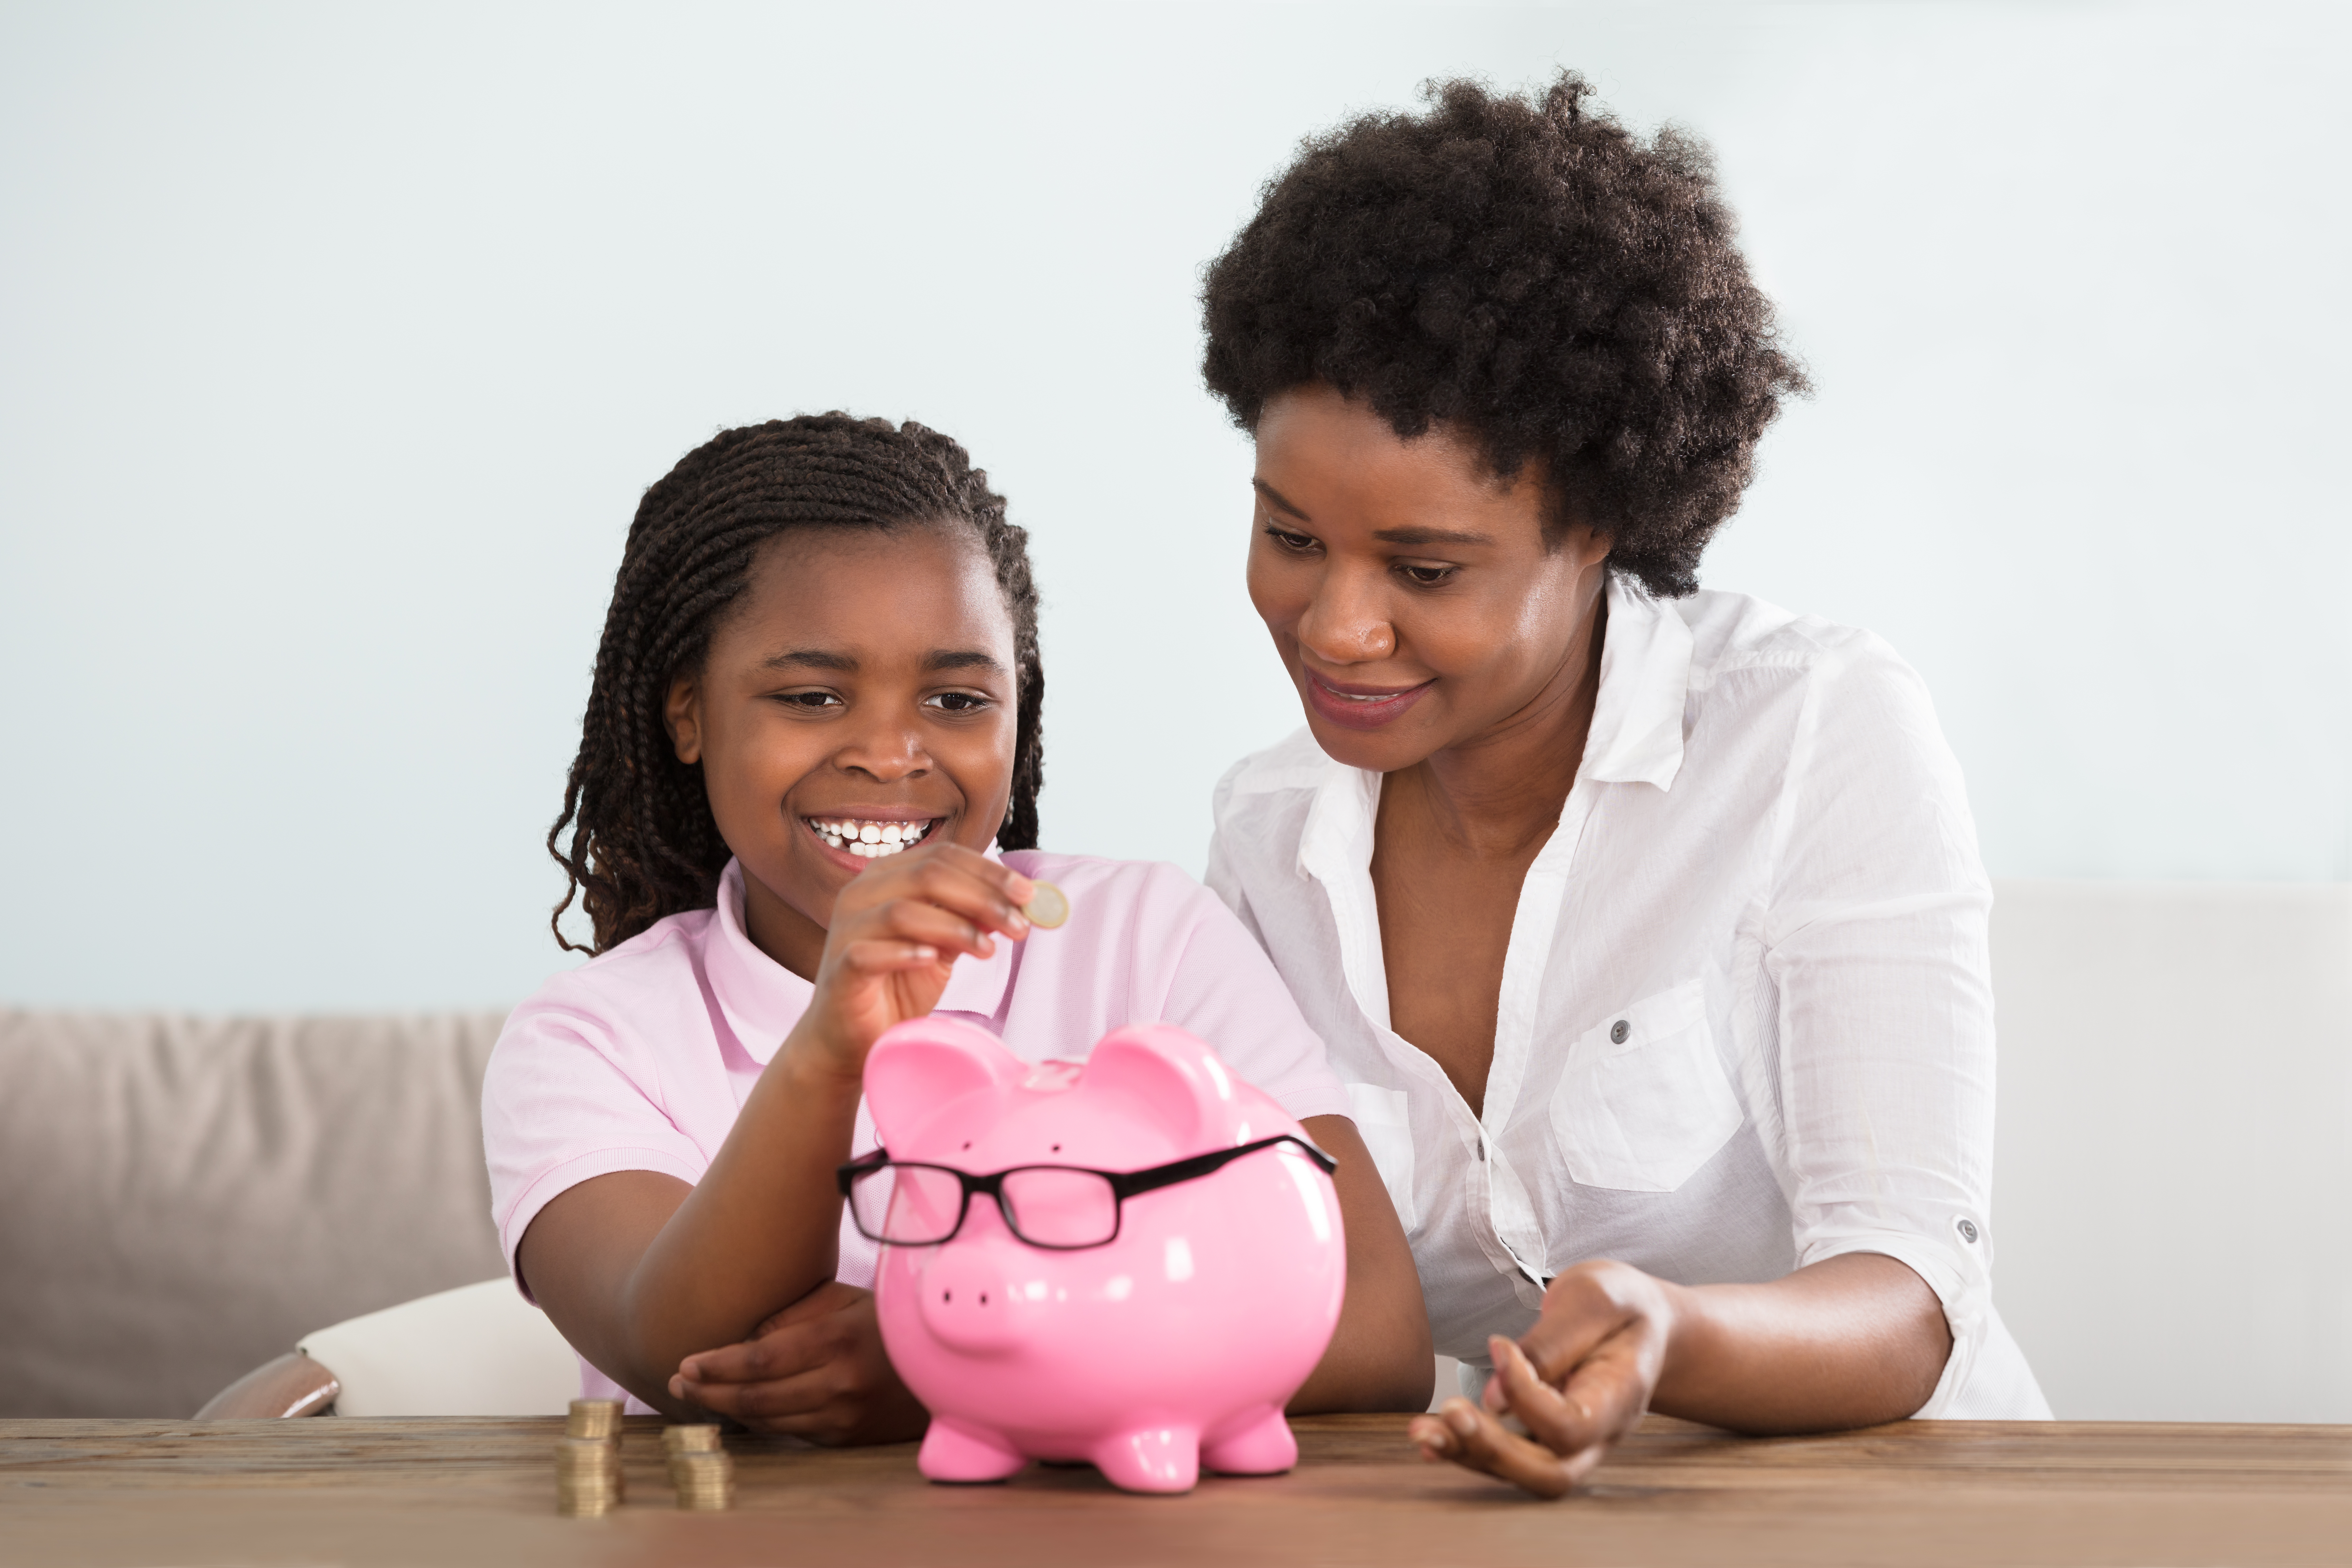 mom and kid putting money in piggy bank